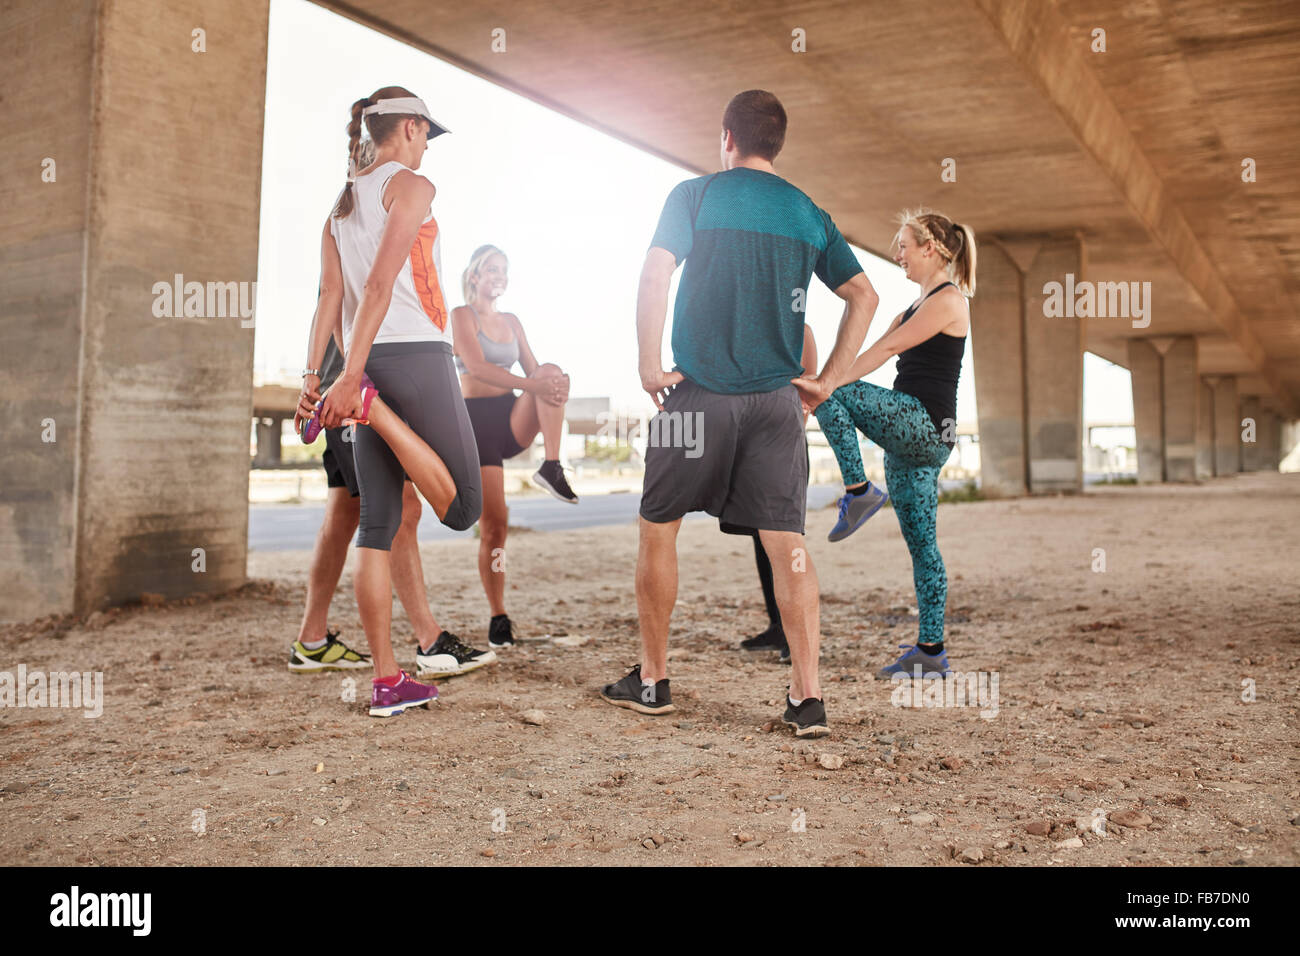 Group of healthy people stretching under a city bridge. Young men and woman taking a break from outdoor training. - Stock Image